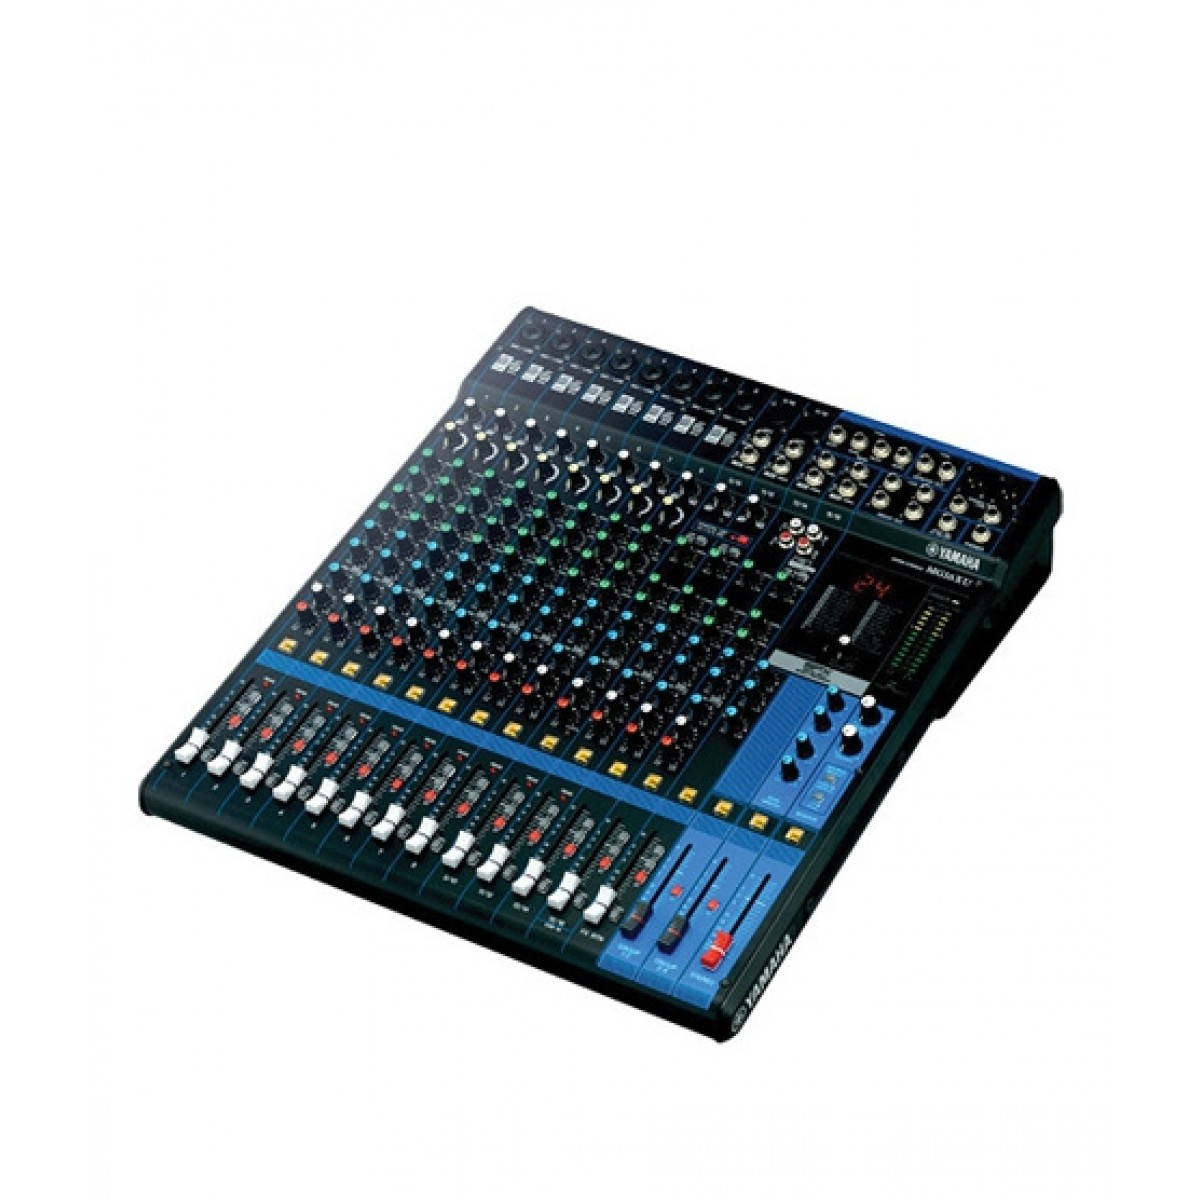 yamaha 16 input stereo mixer mg16xu price in pakistan buy yamaha 16 input stereo mixer with. Black Bedroom Furniture Sets. Home Design Ideas